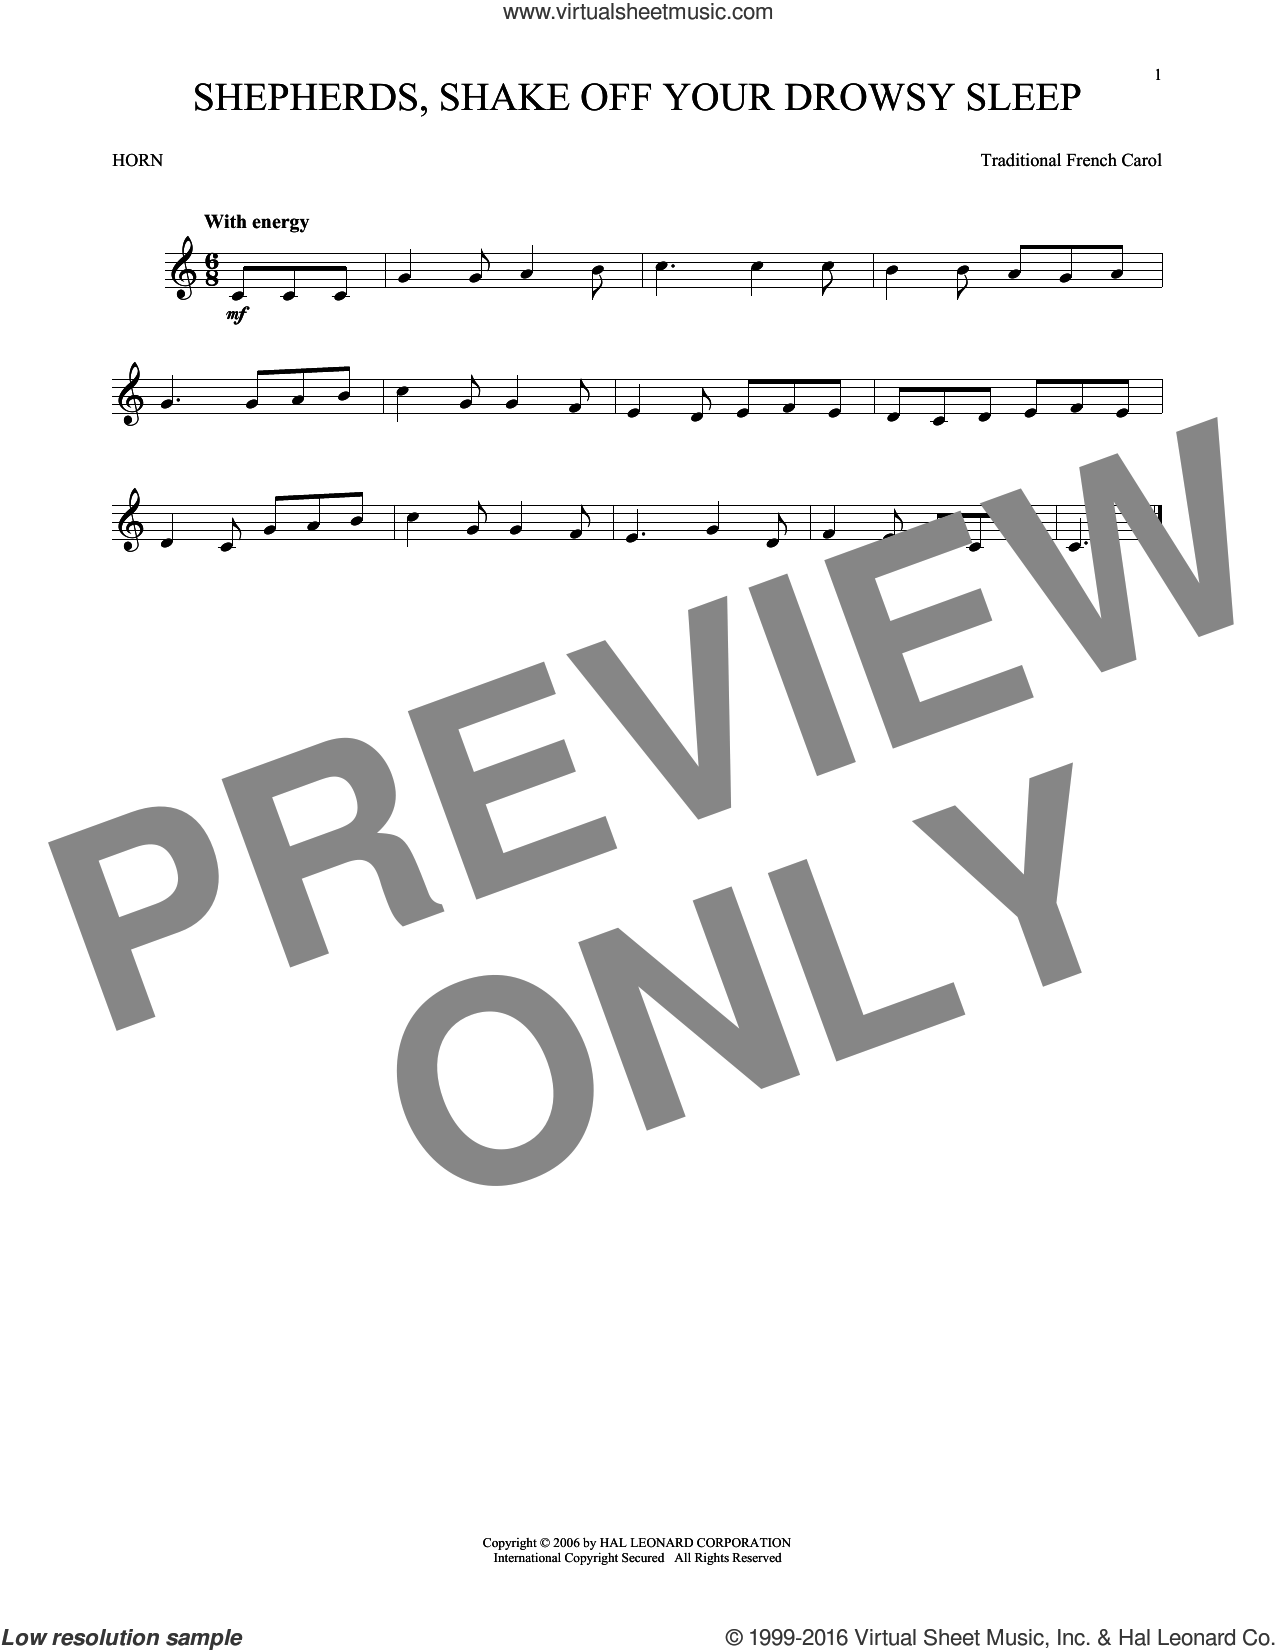 Shepherds, Shake Off Your Drowsy Sleep sheet music for horn solo, intermediate skill level